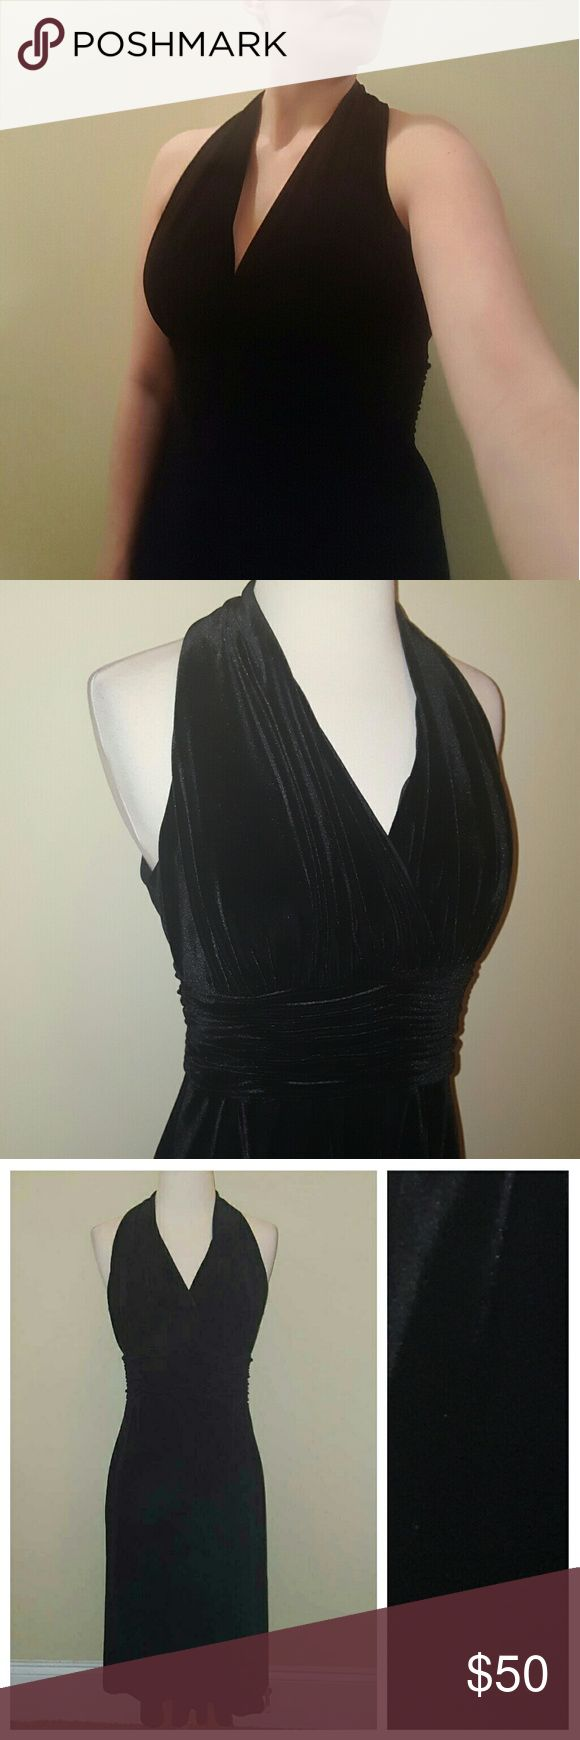 """Beautiful Black Velvet Dress Sweet yet sexy black velvet dress!  Awesome neckline and cut!  Comfortable and nice!  Not for the bustier ladies though!  Flowy bottom!  Great cocktail dress!  Measurements  Bust 32"""" Waist 32"""" Length 42""""   Thanks for shopping! Evan Picone Dresses"""